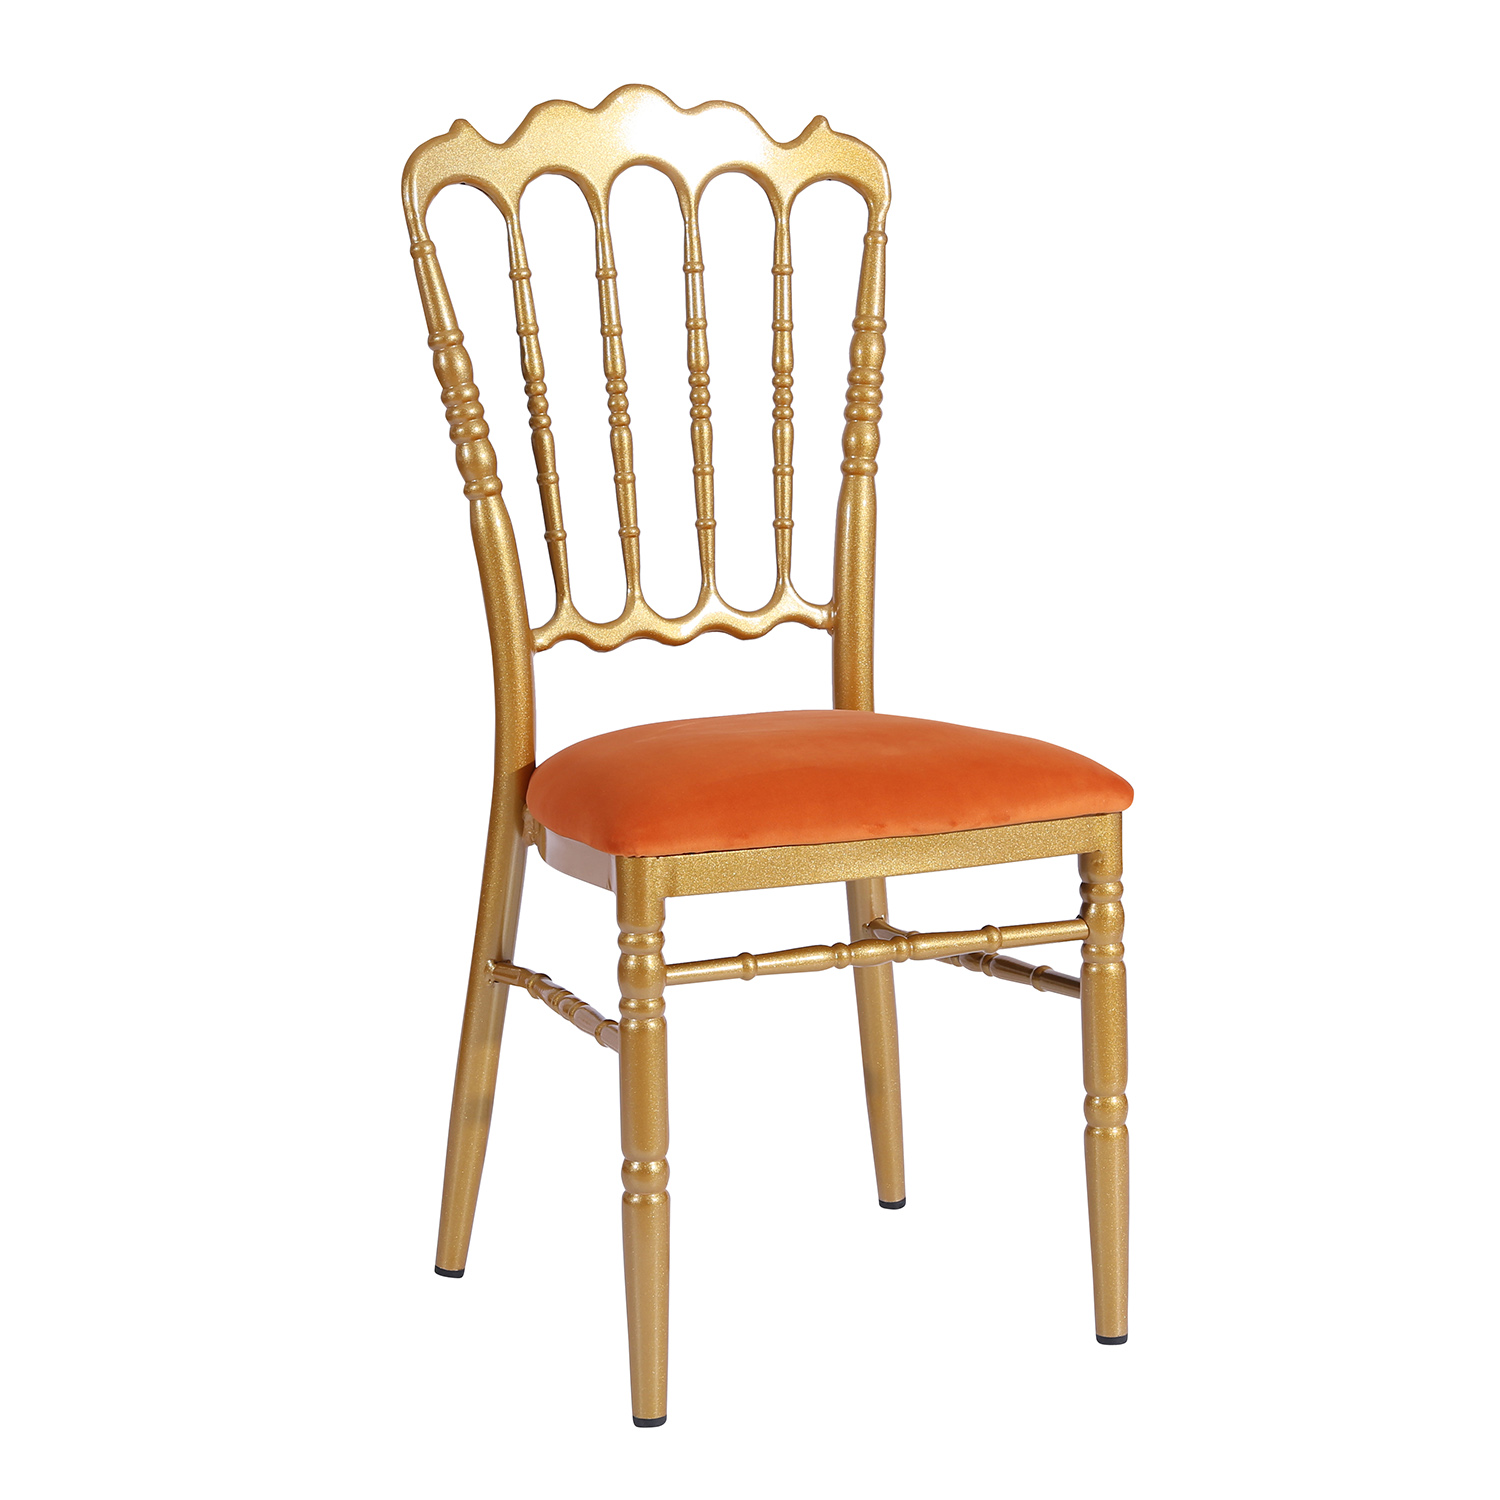 best value chiavari chairs with cushions from China for hotel-1